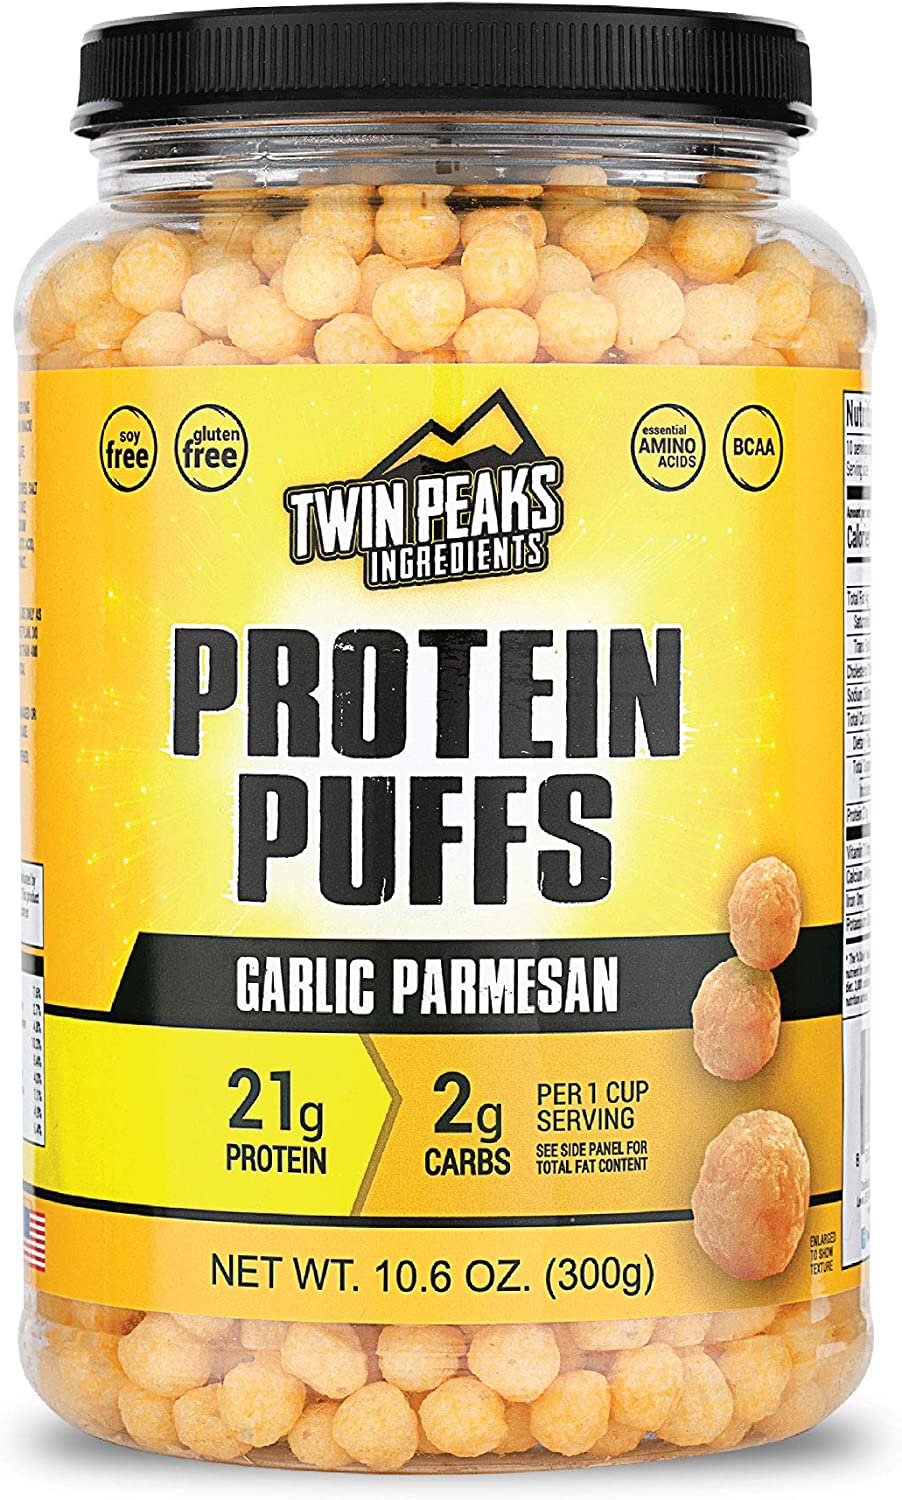 Amazon Com Twin Peaks Low Carb Keto Friendly Protein Puffs Garlic Parmesan 300g 21g Protein 2g Carbs Health Personal Care